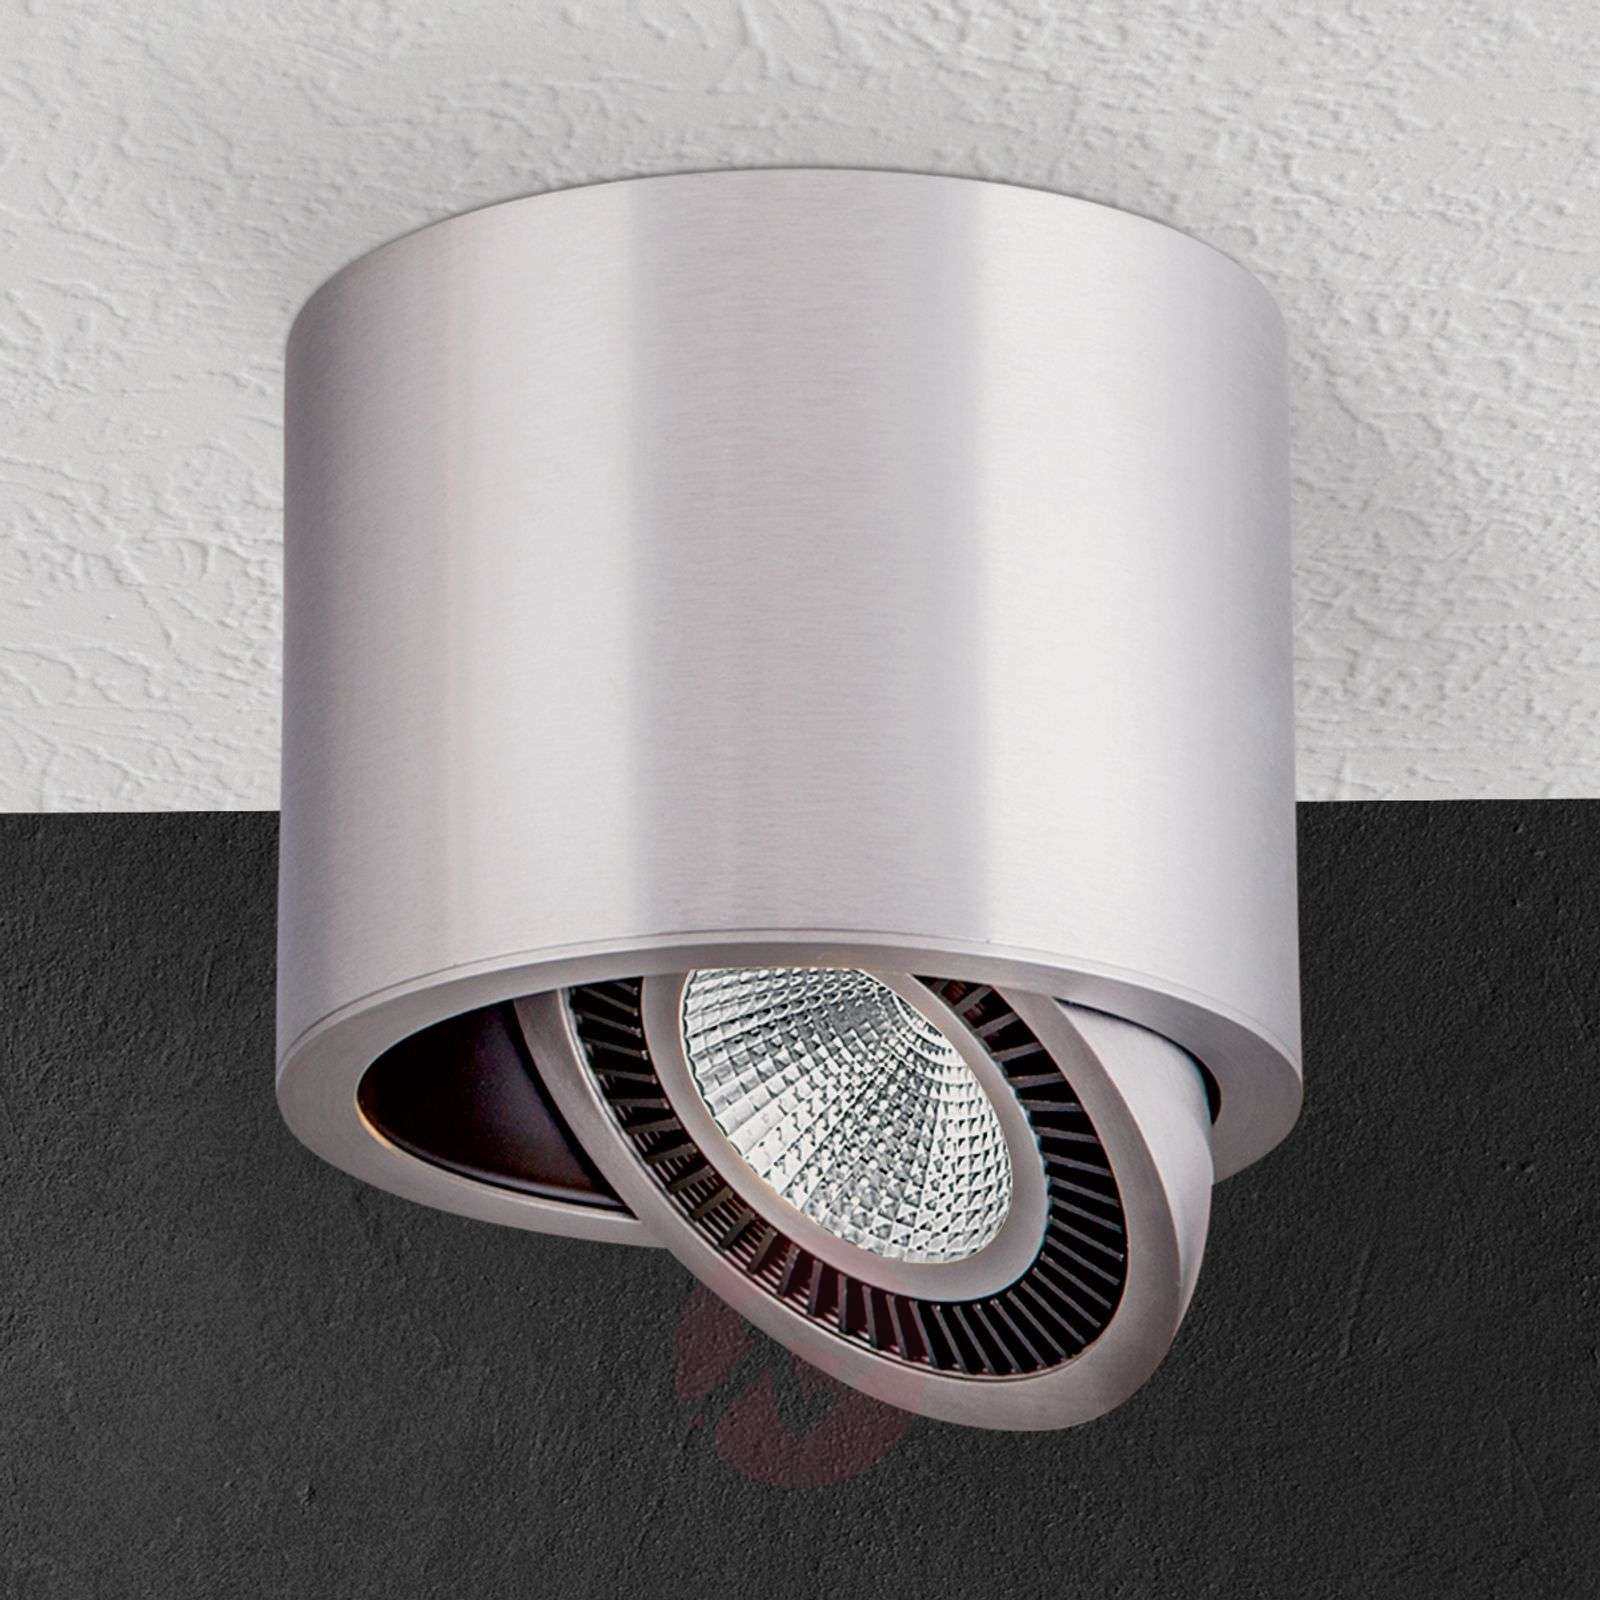 Silver led surface mounted ceiling spotlight sofya lights silver led surface mounted ceiling spotlight sofya 7255147 01 aloadofball Image collections